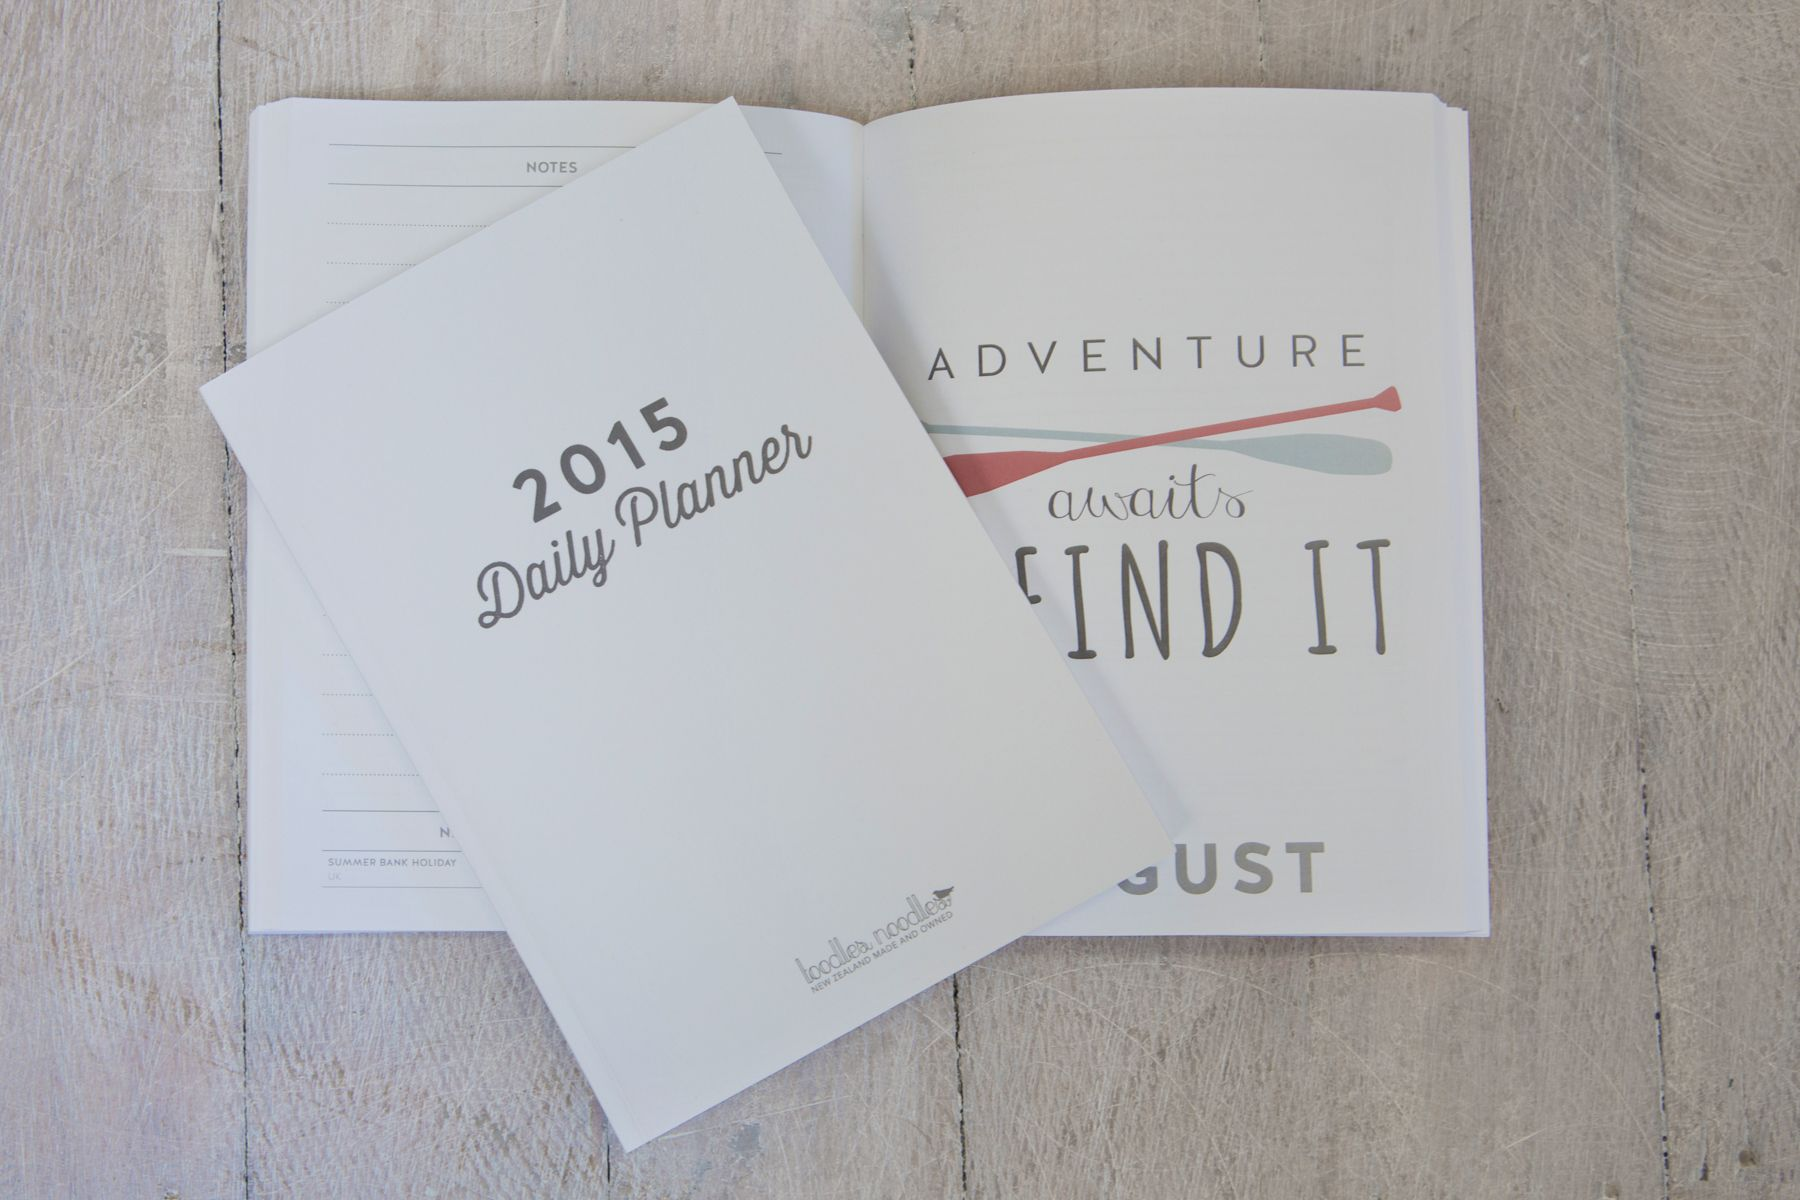 great stocking stuffer idea - 2015 daily planner diary from @tootsnoots